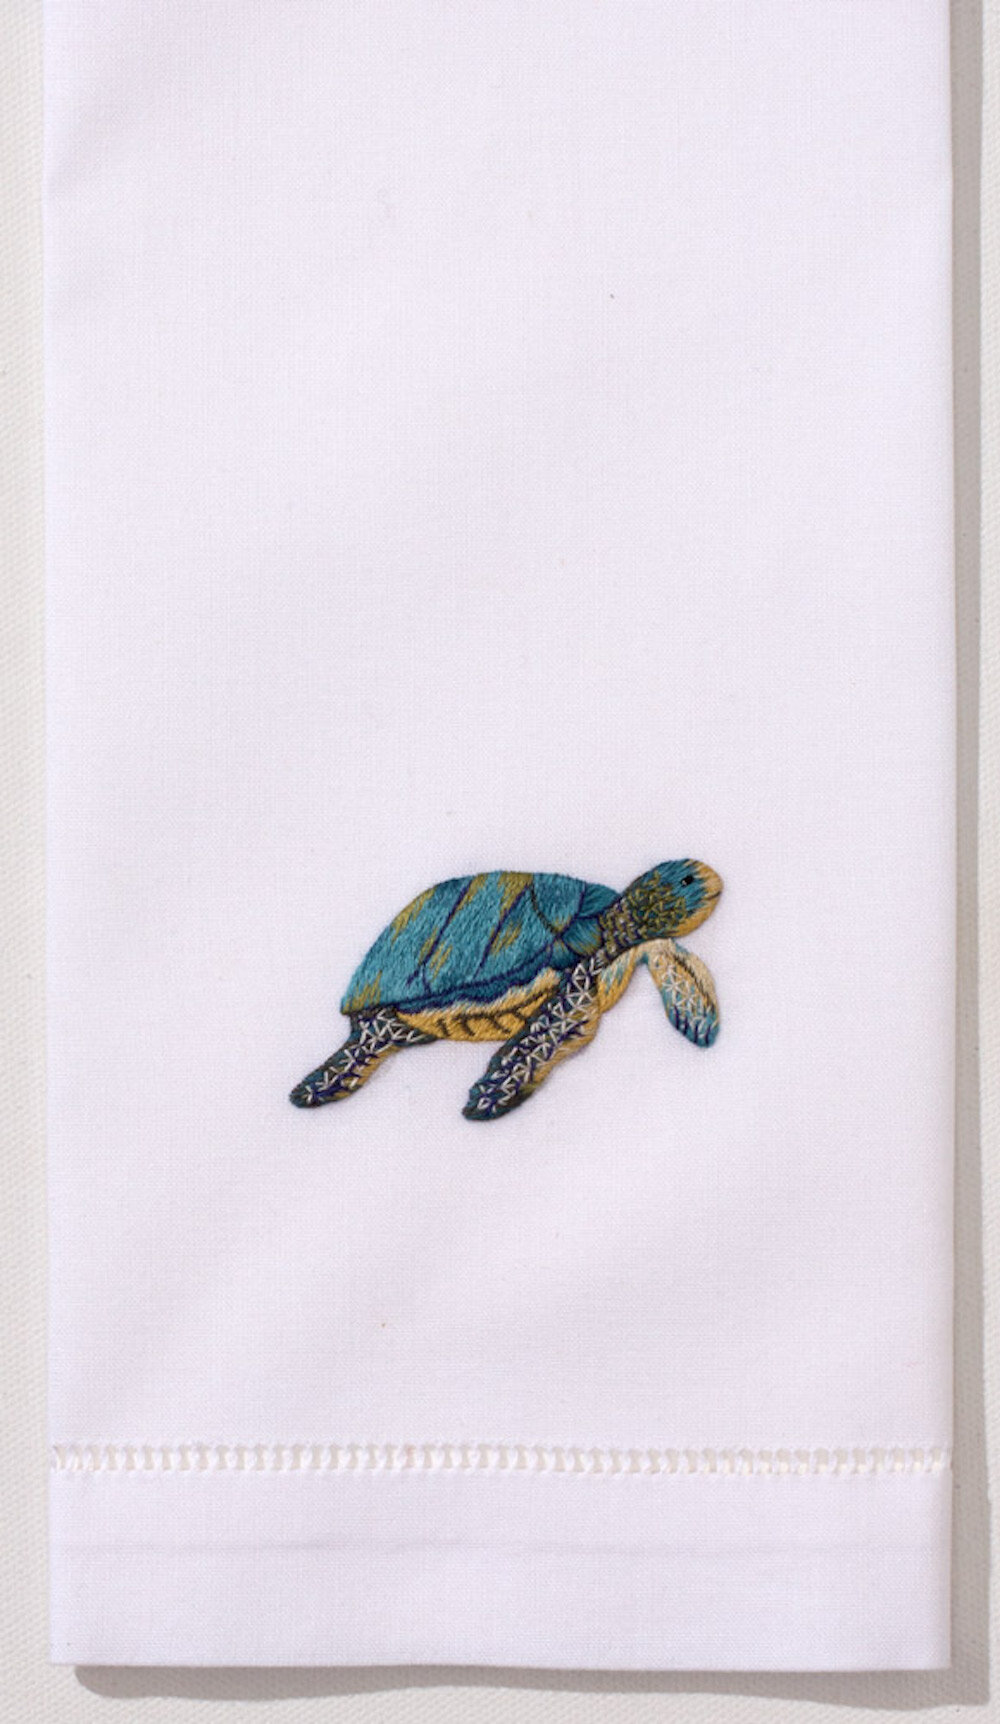 Patient Turtle Embroidery